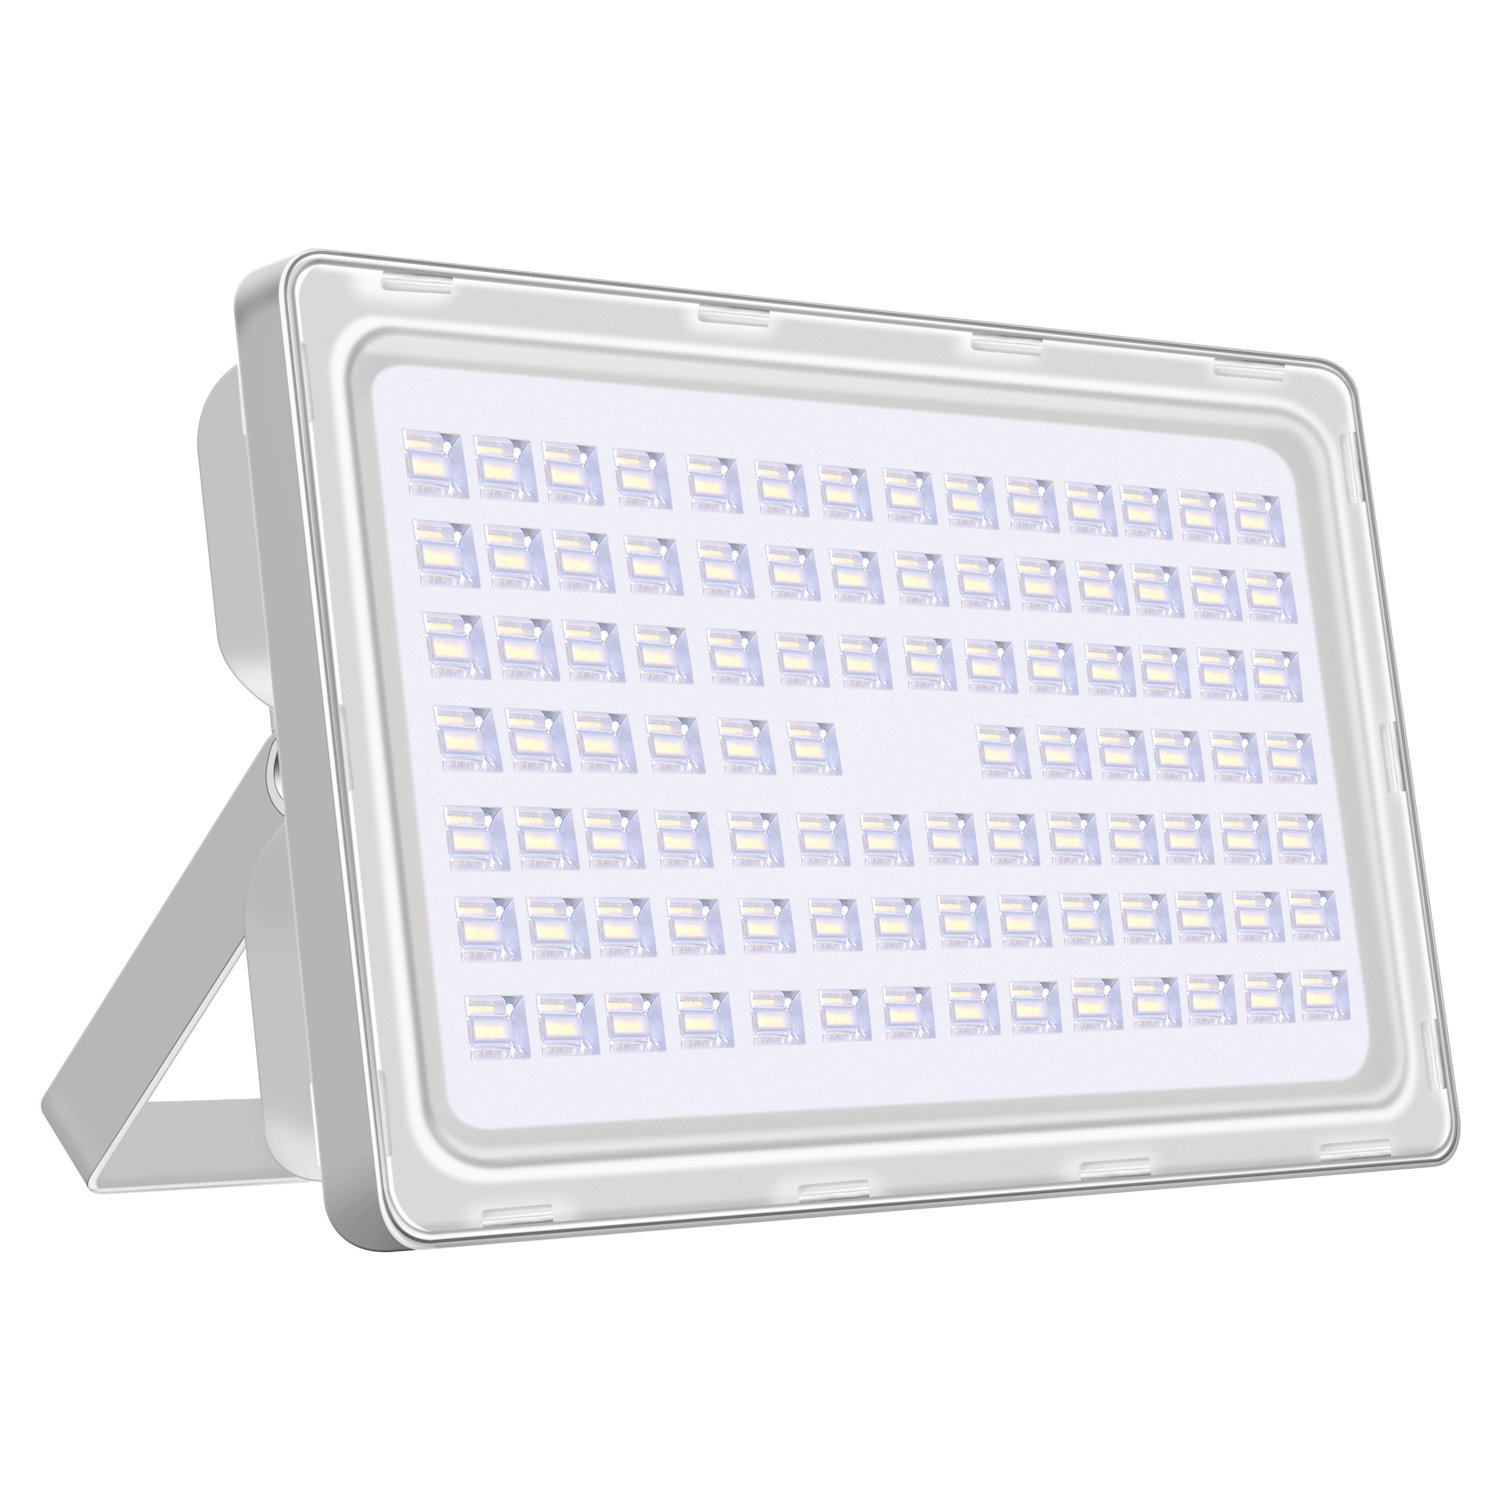 Viugreum 250W LED Outdoor Flood Lights, Thinner and Lighter Design, Waterproof IP65, 30000LM, Daylight White(6000-6500K), Super Bright Security Lights, for Garden, Yard, Warehouse, Square, Billboard